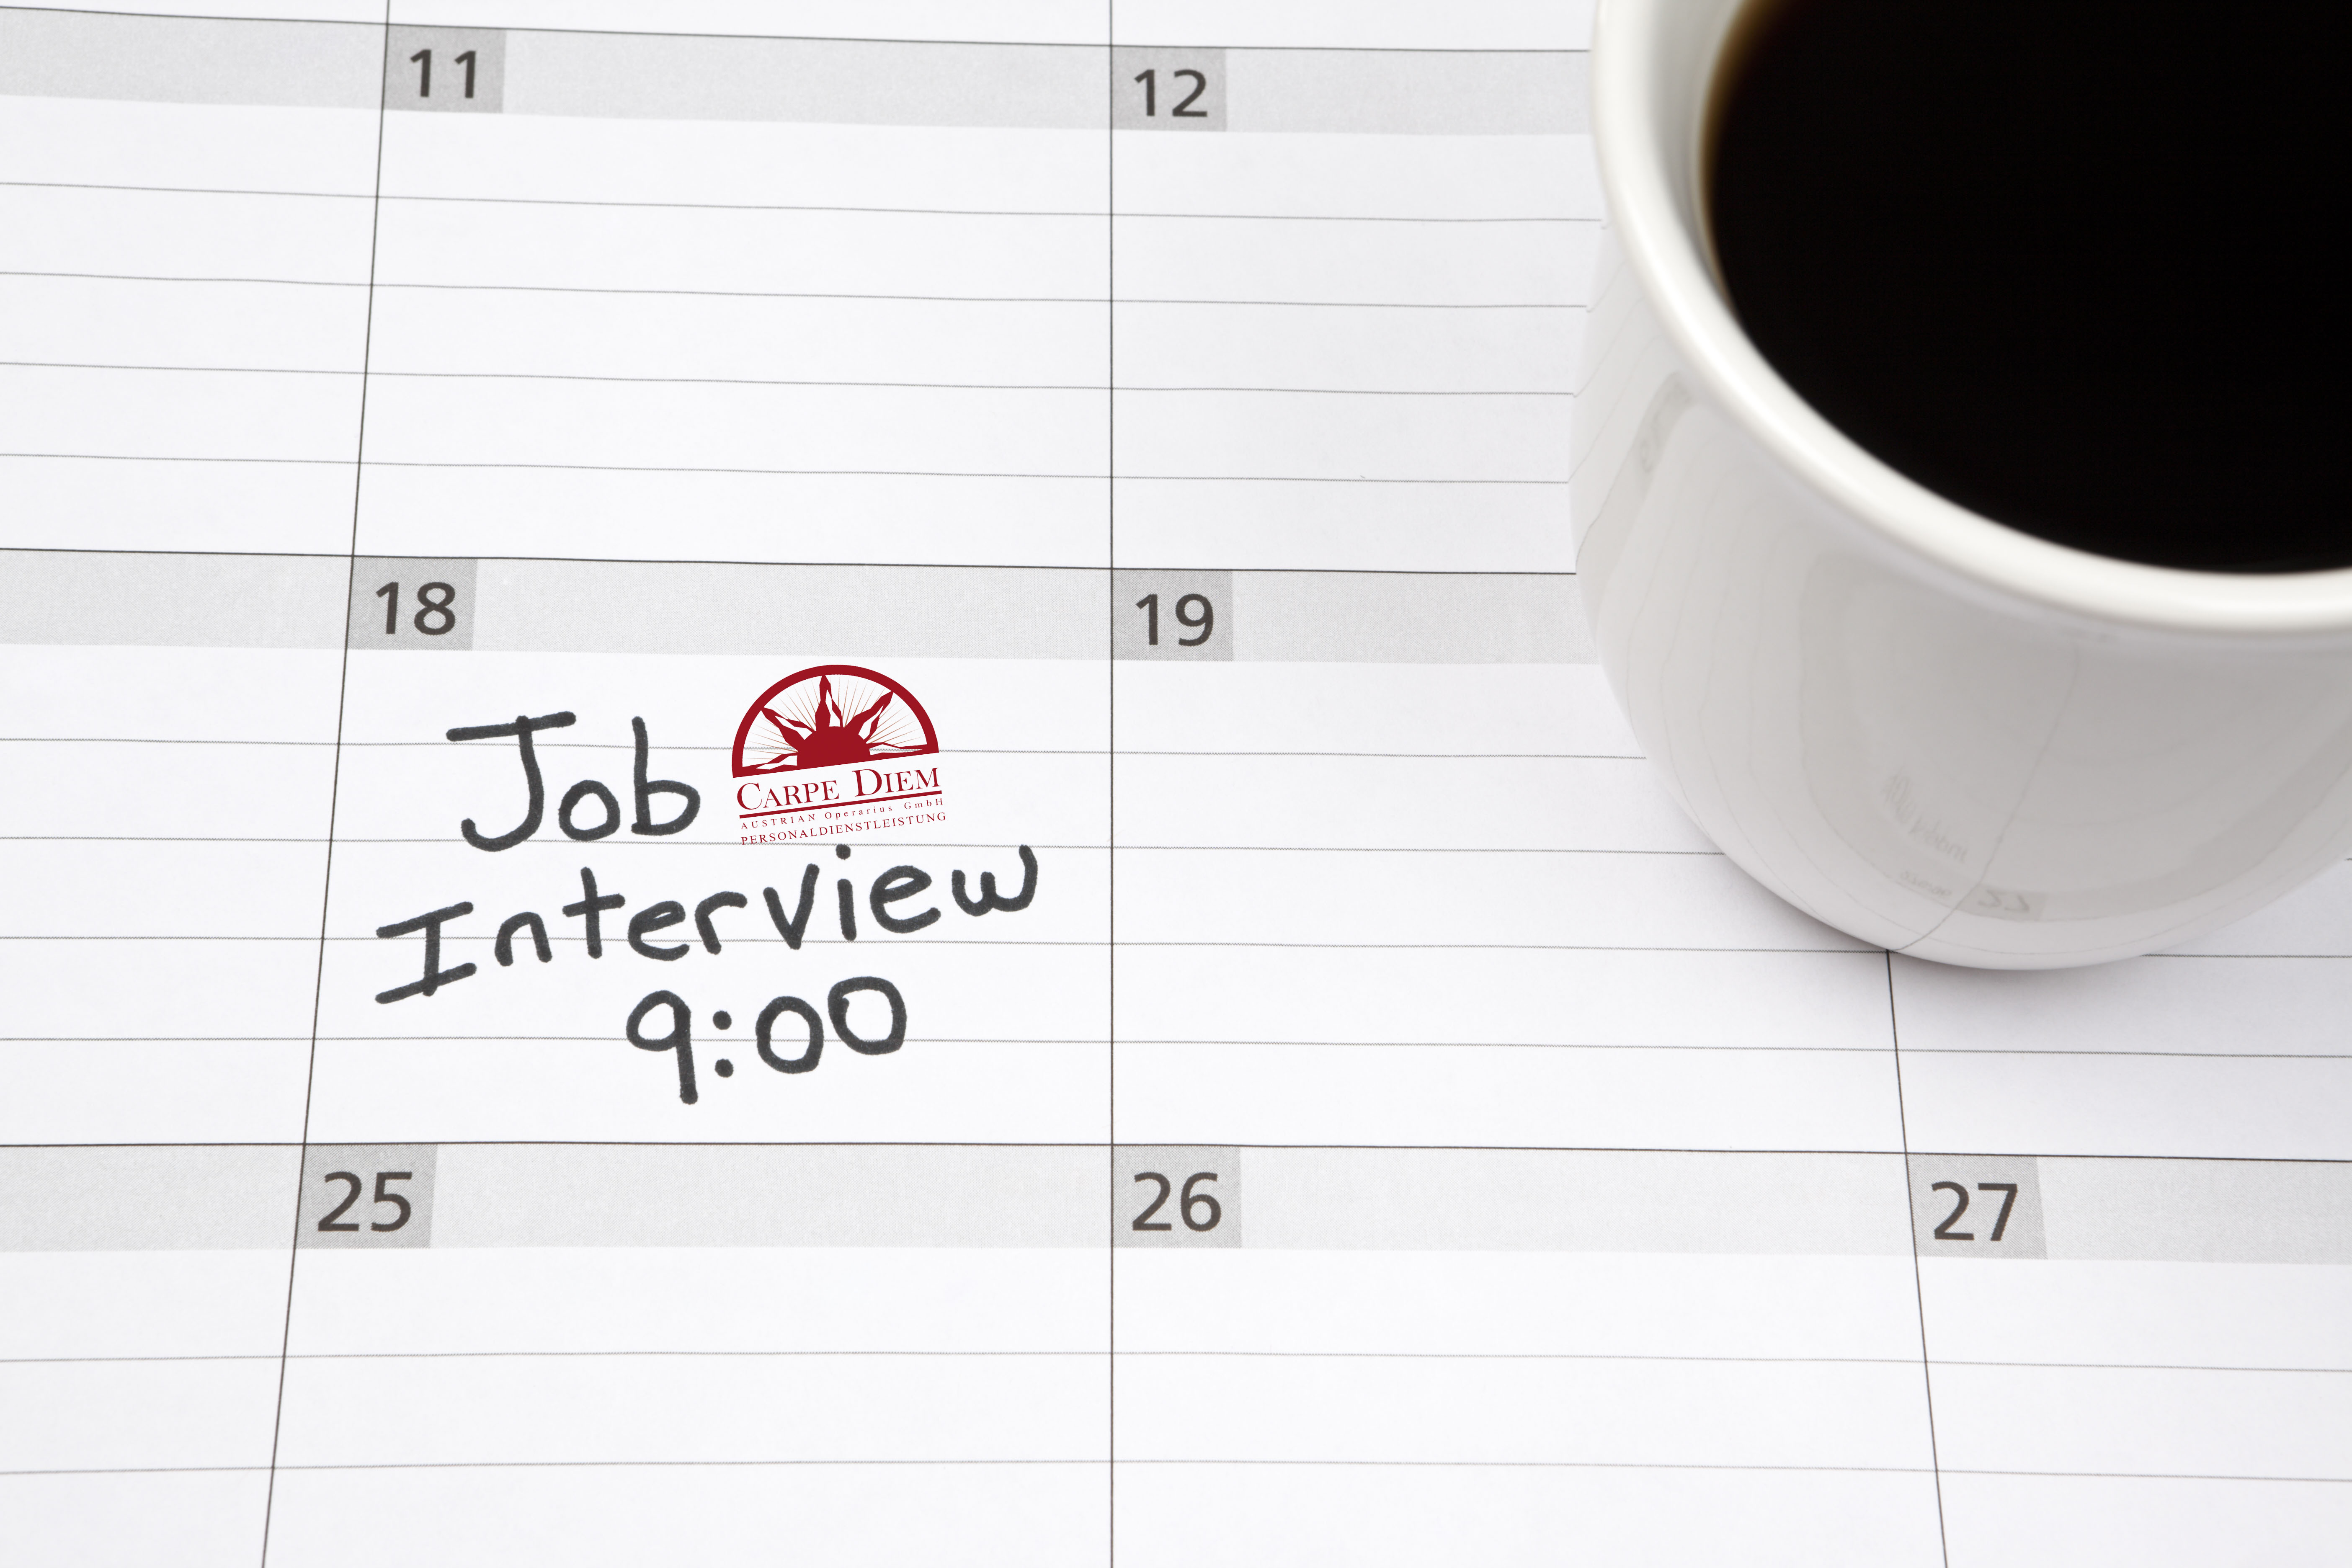 Job Interview Reminder on a Calendar